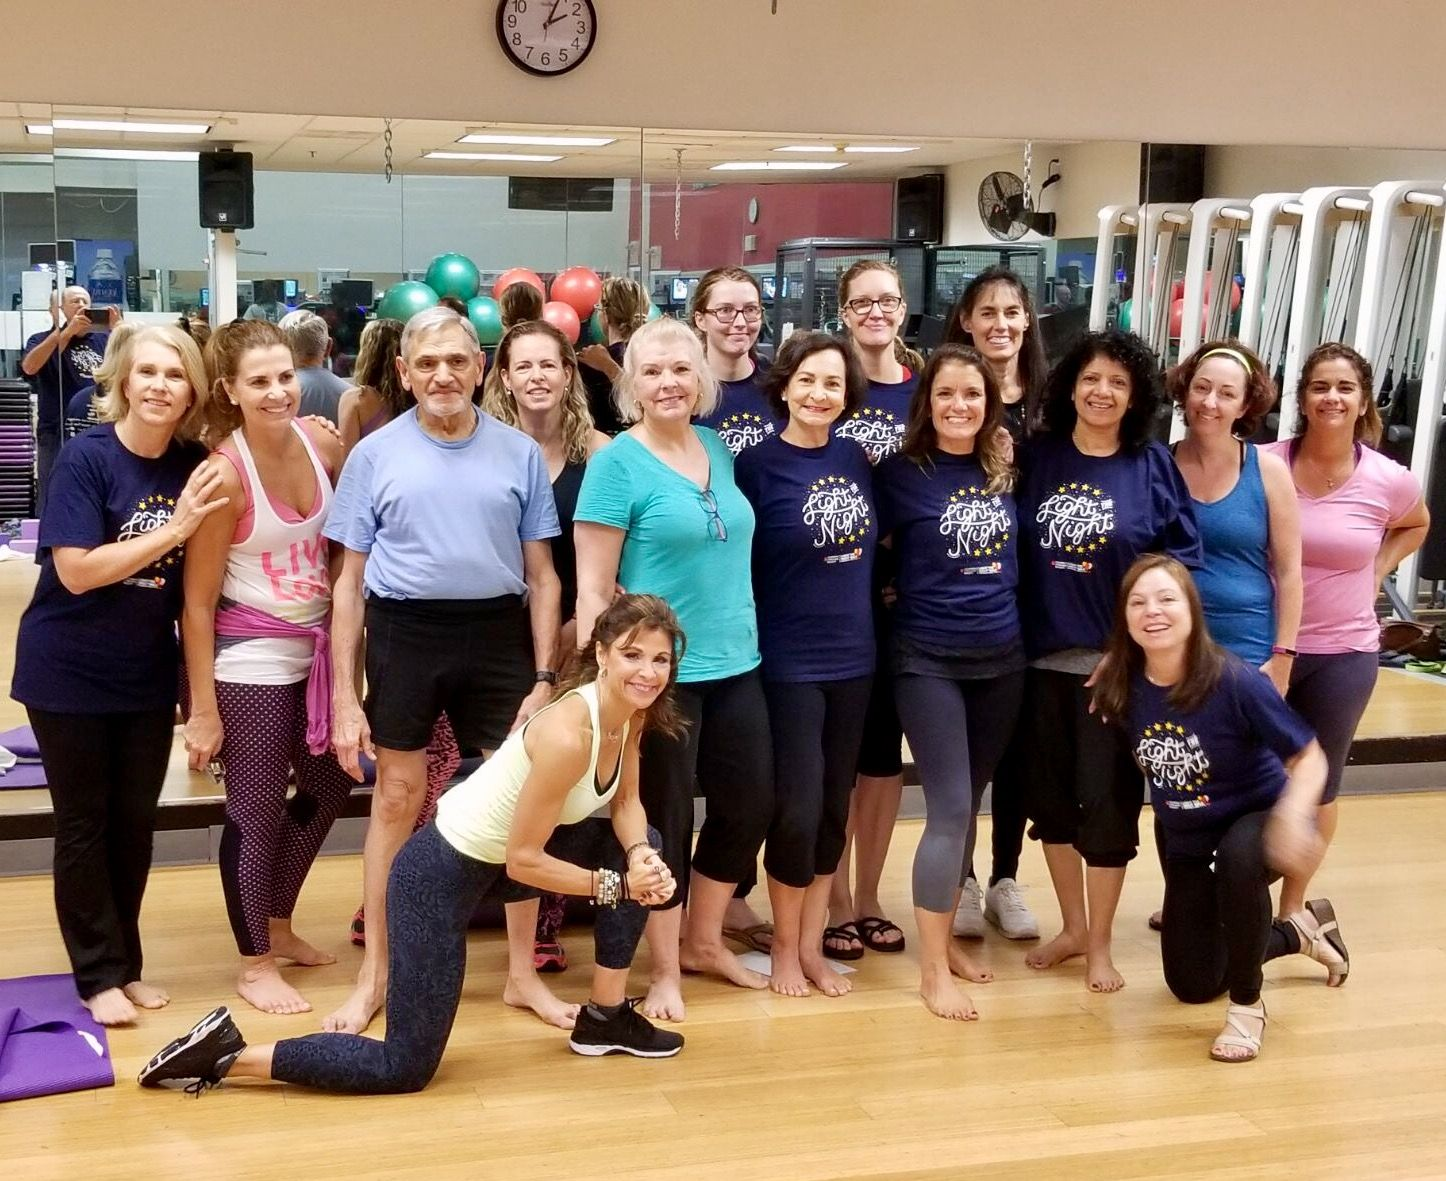 Yoga for a Cure with Team Holtzman